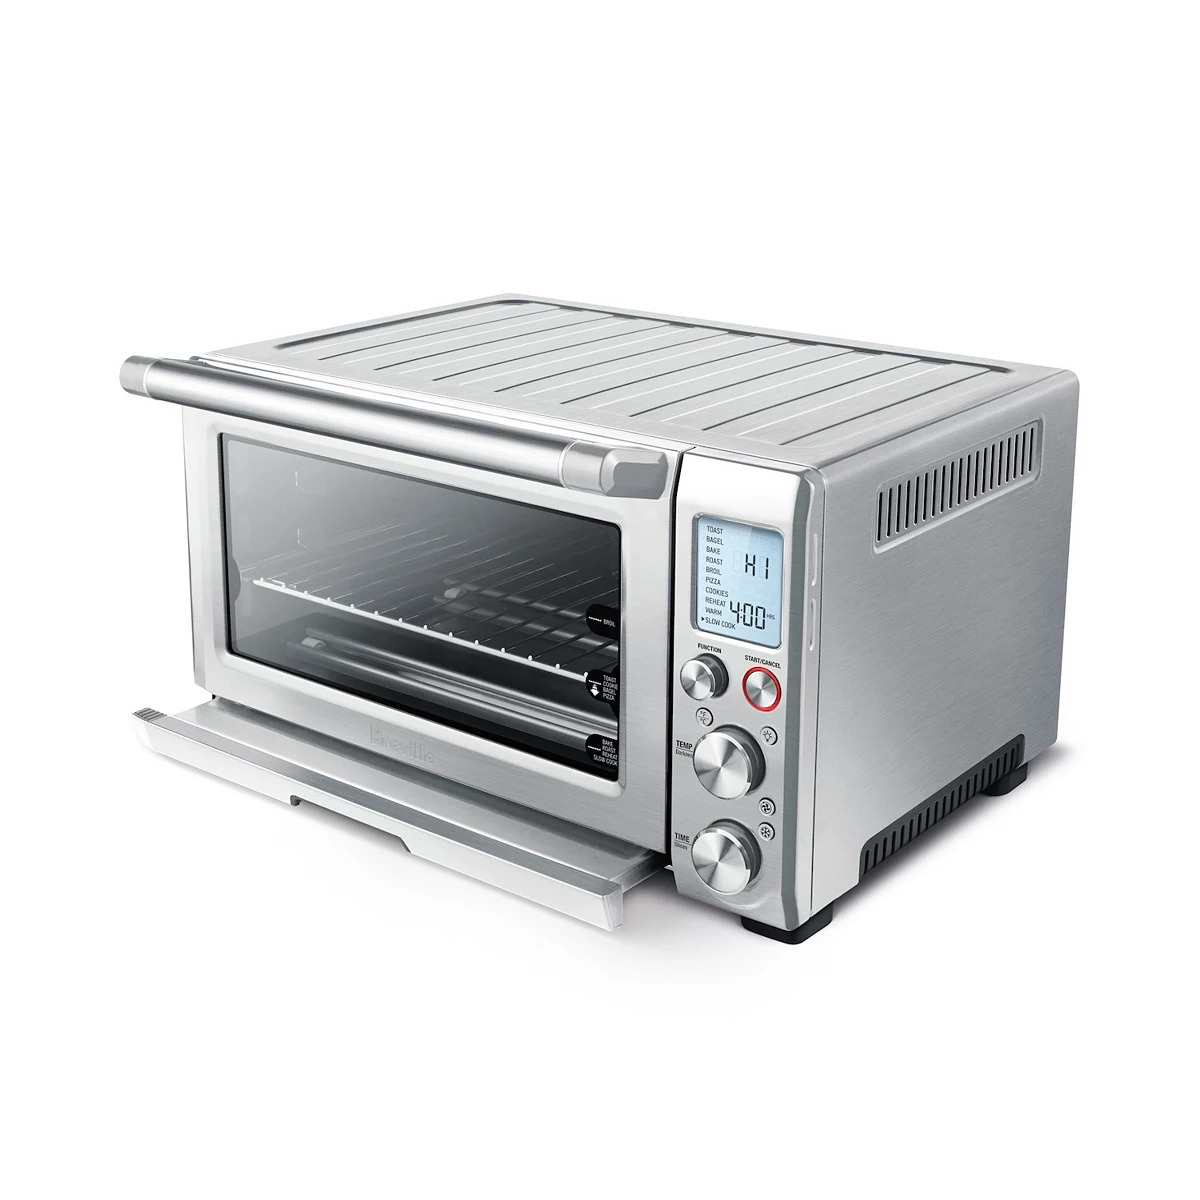 Breville Smart Oven Pro Toaster Oven BOV845BSS